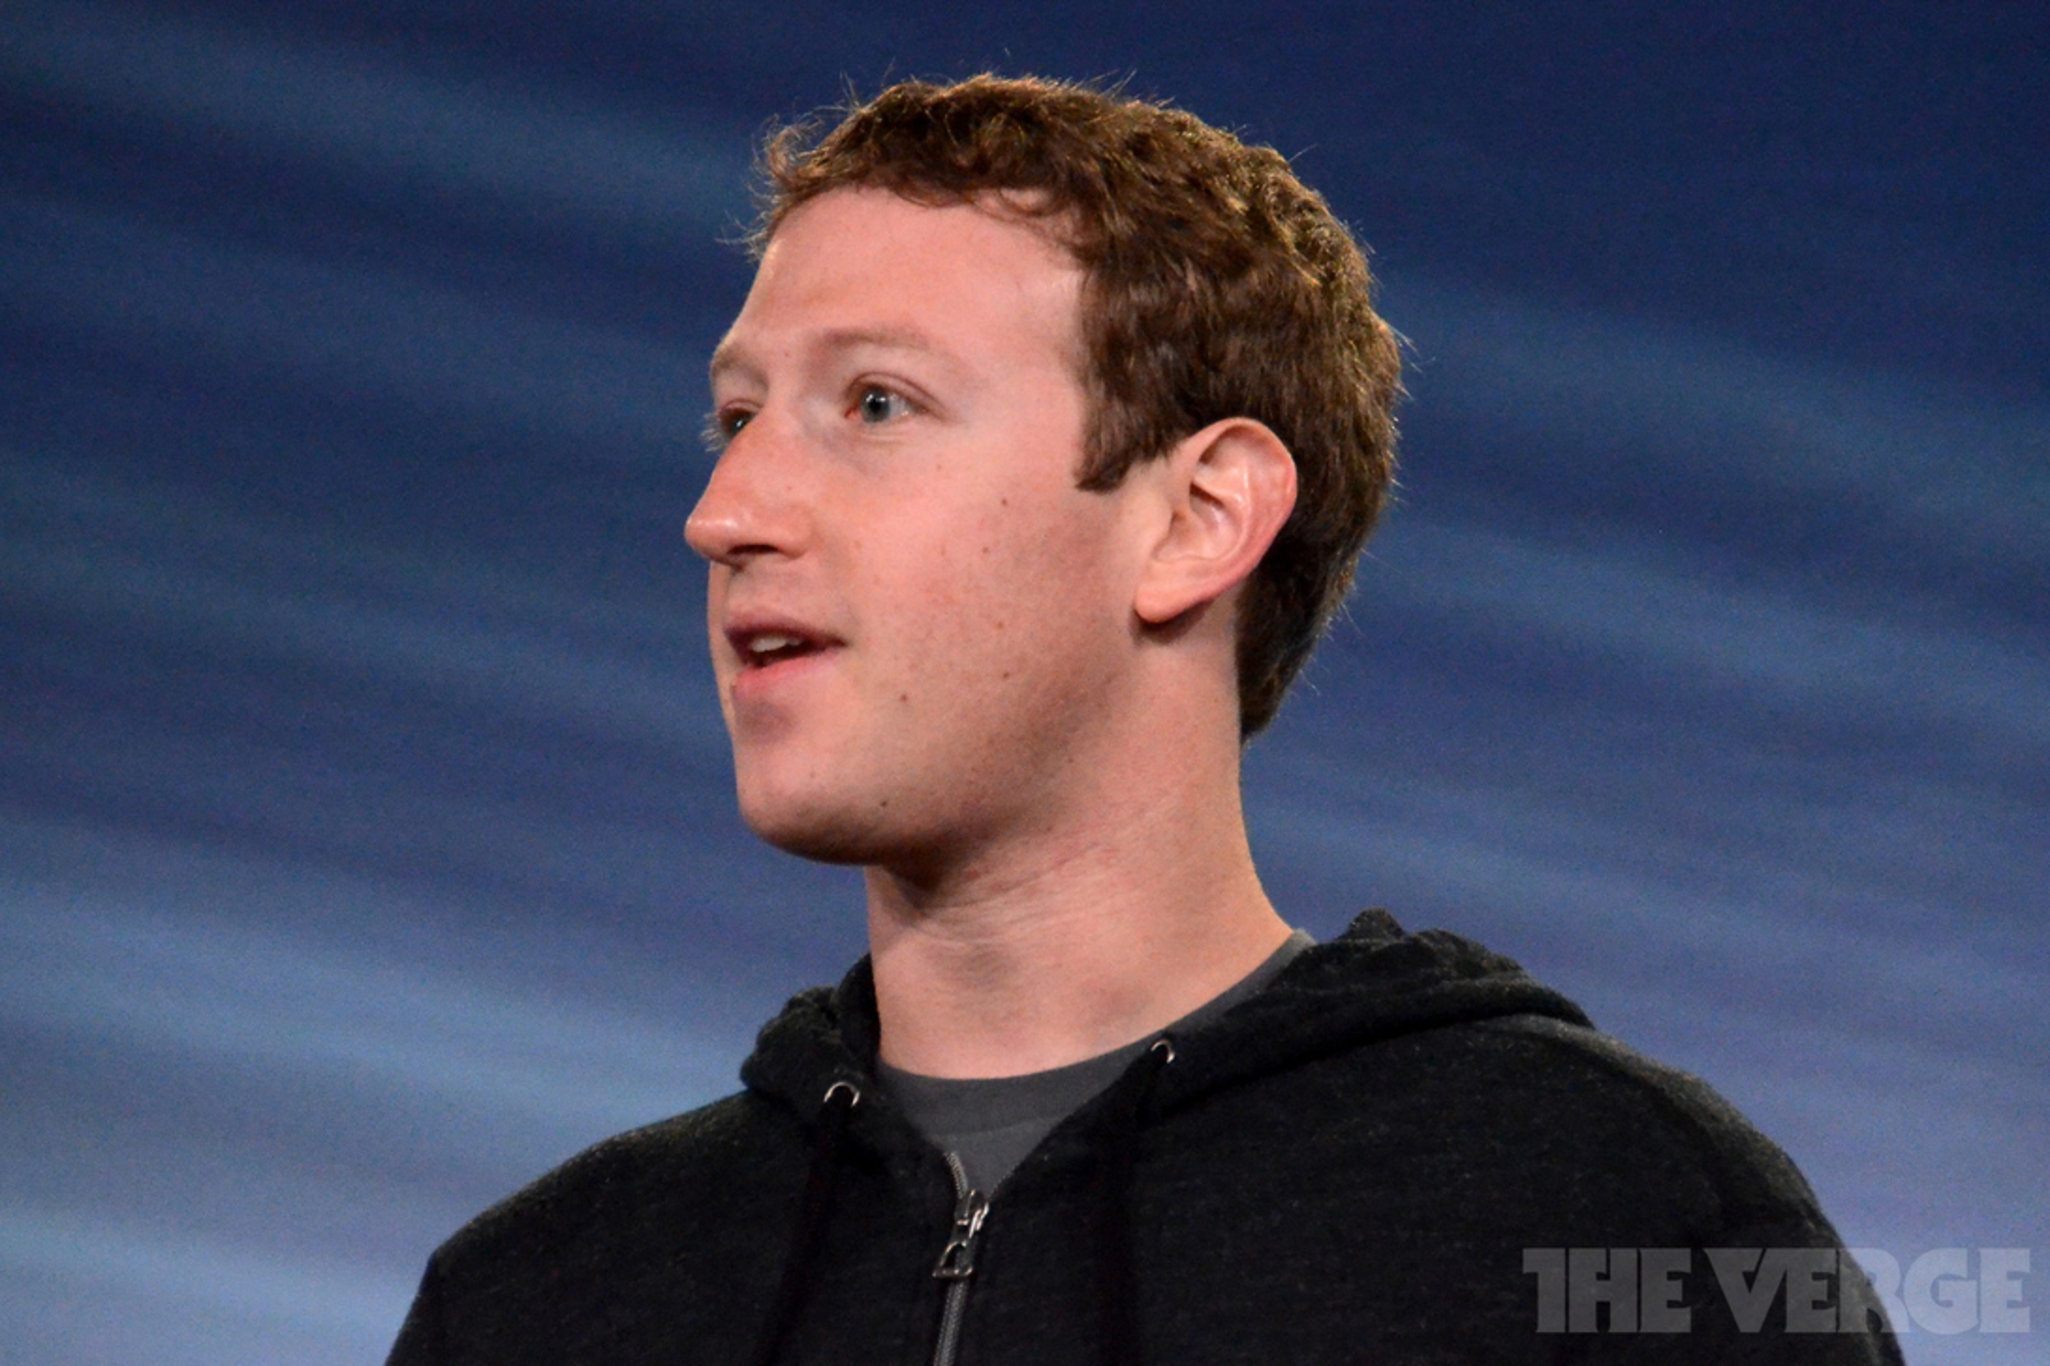 Facebook - Mark Zuckerberg s'explique sur l'obligation d'installer Messenger